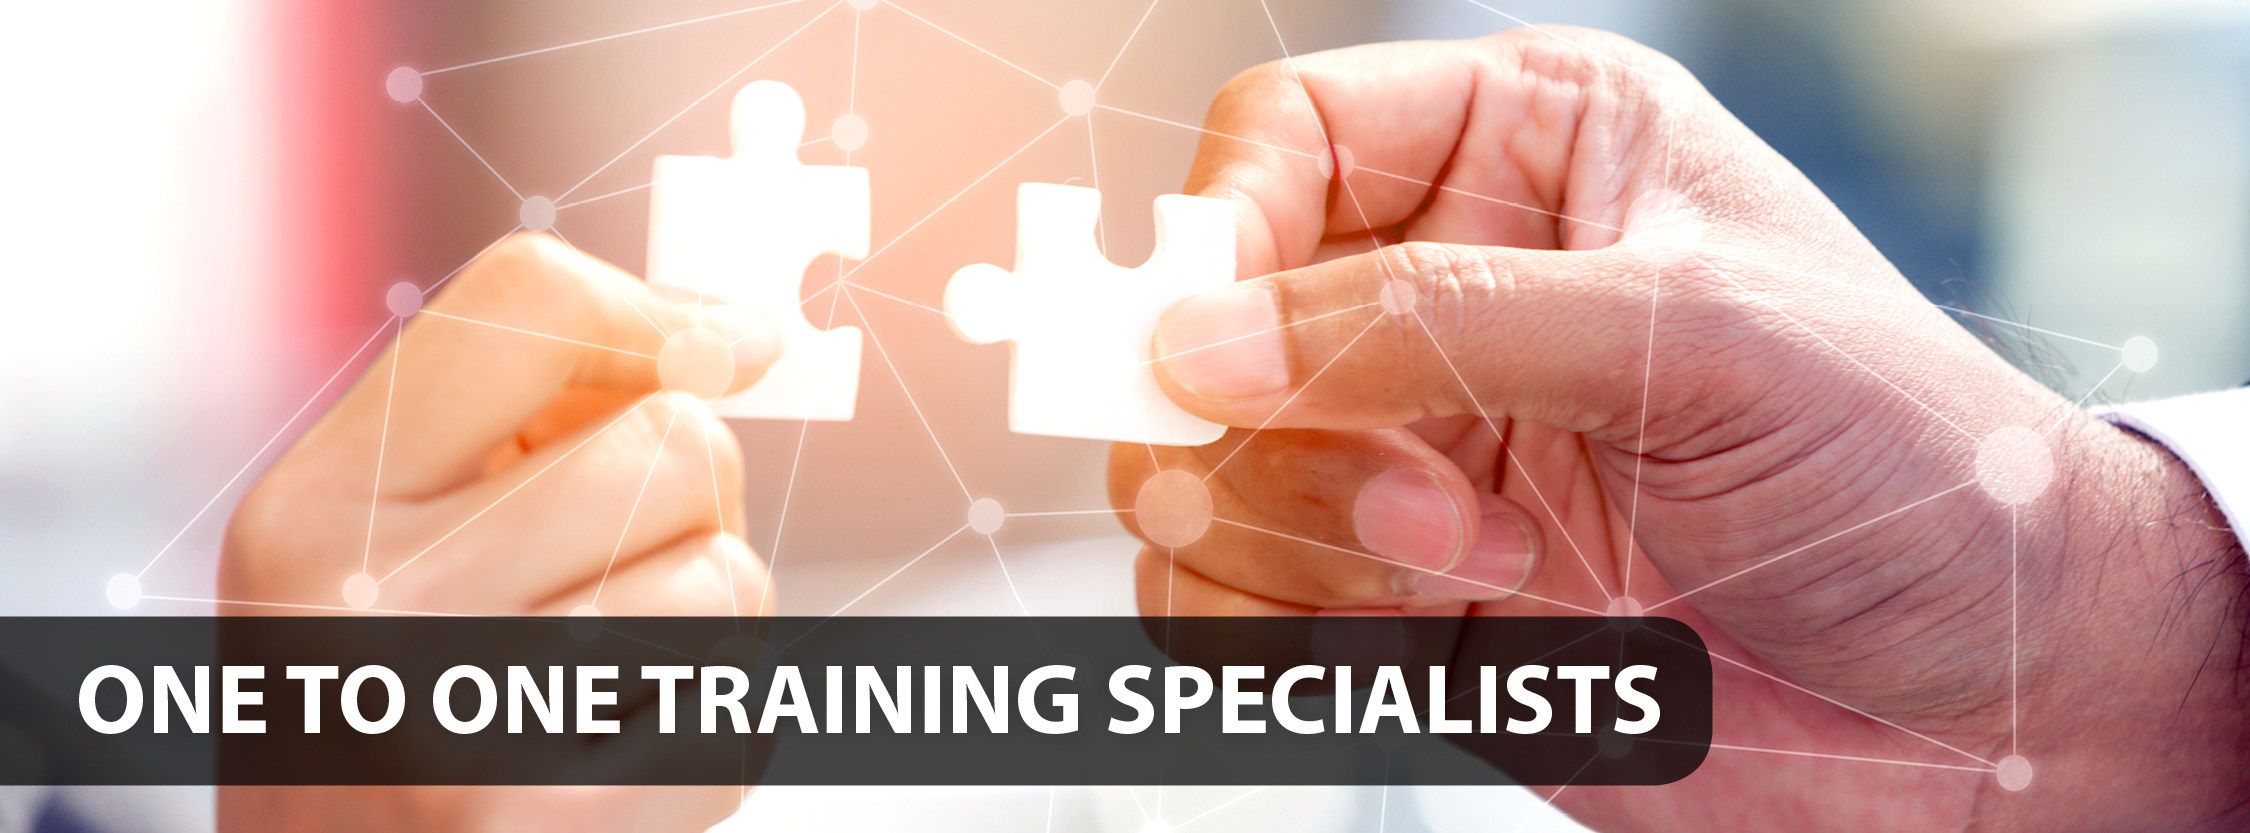 One to one training specialists